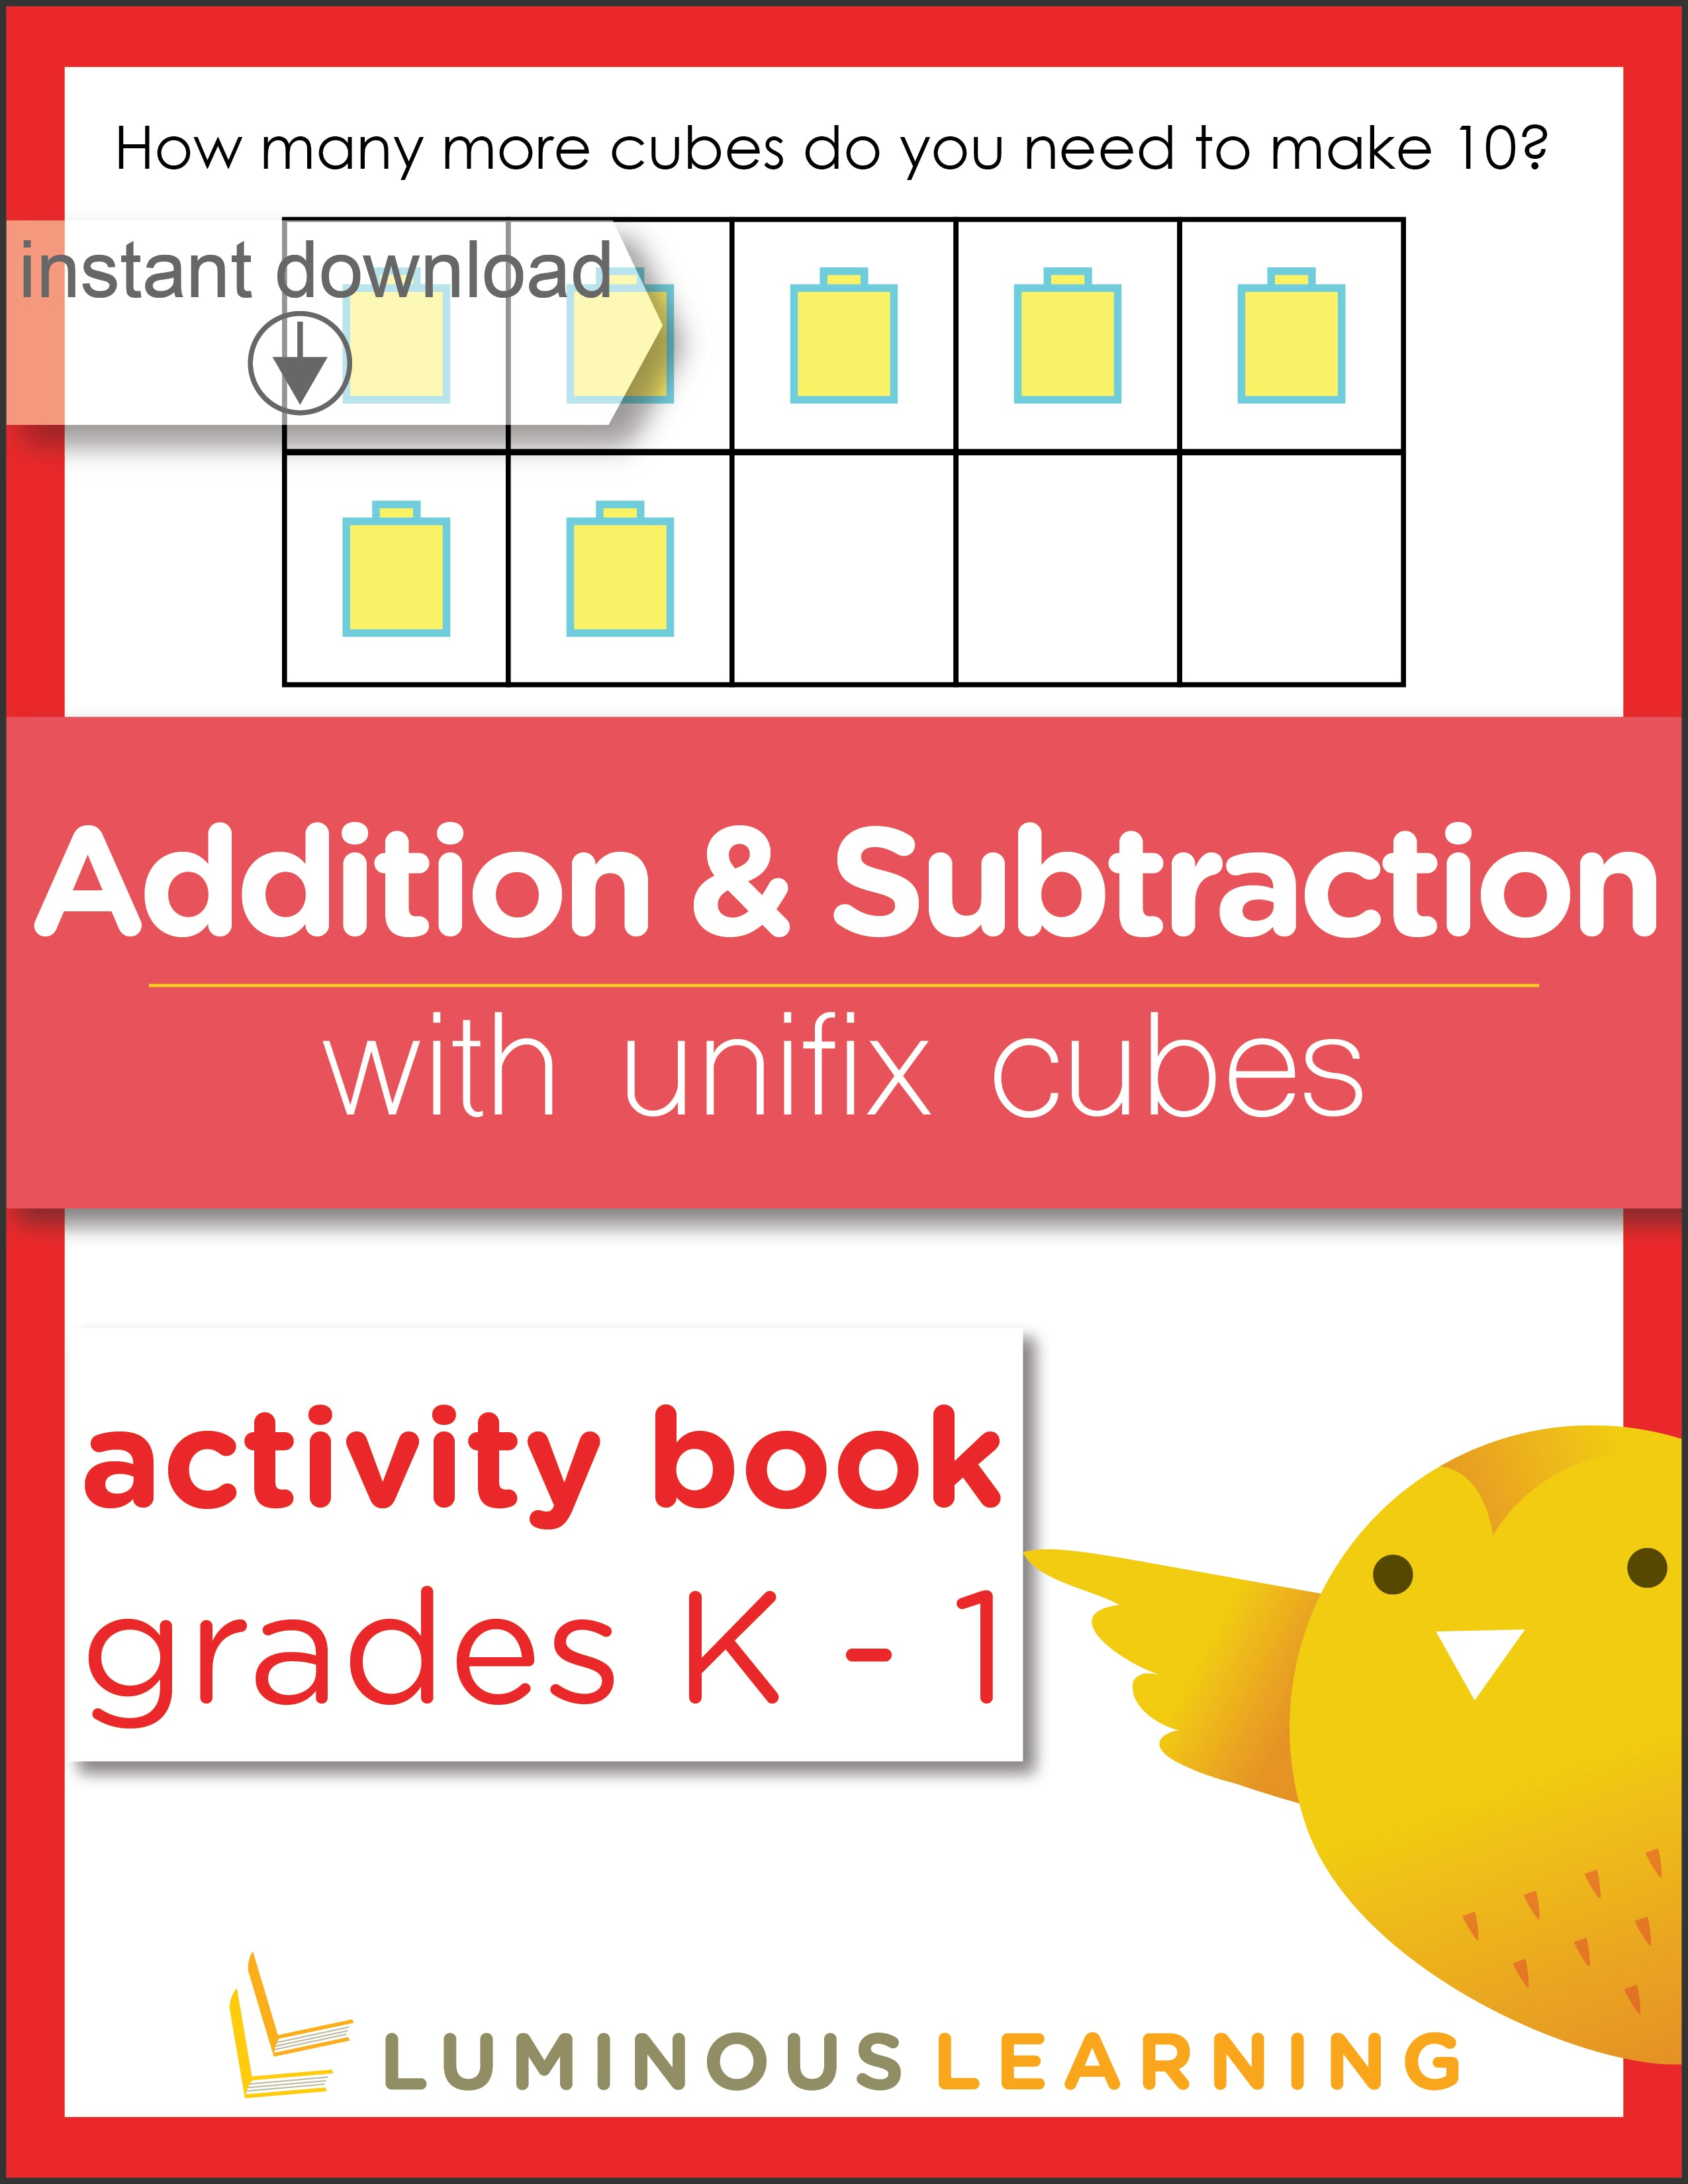 image relating to Math Fact Fluency Games Printable referred to as Grades K - 1 Addition and Subtraction with Unifix Cubes: Printable Math Pursuits